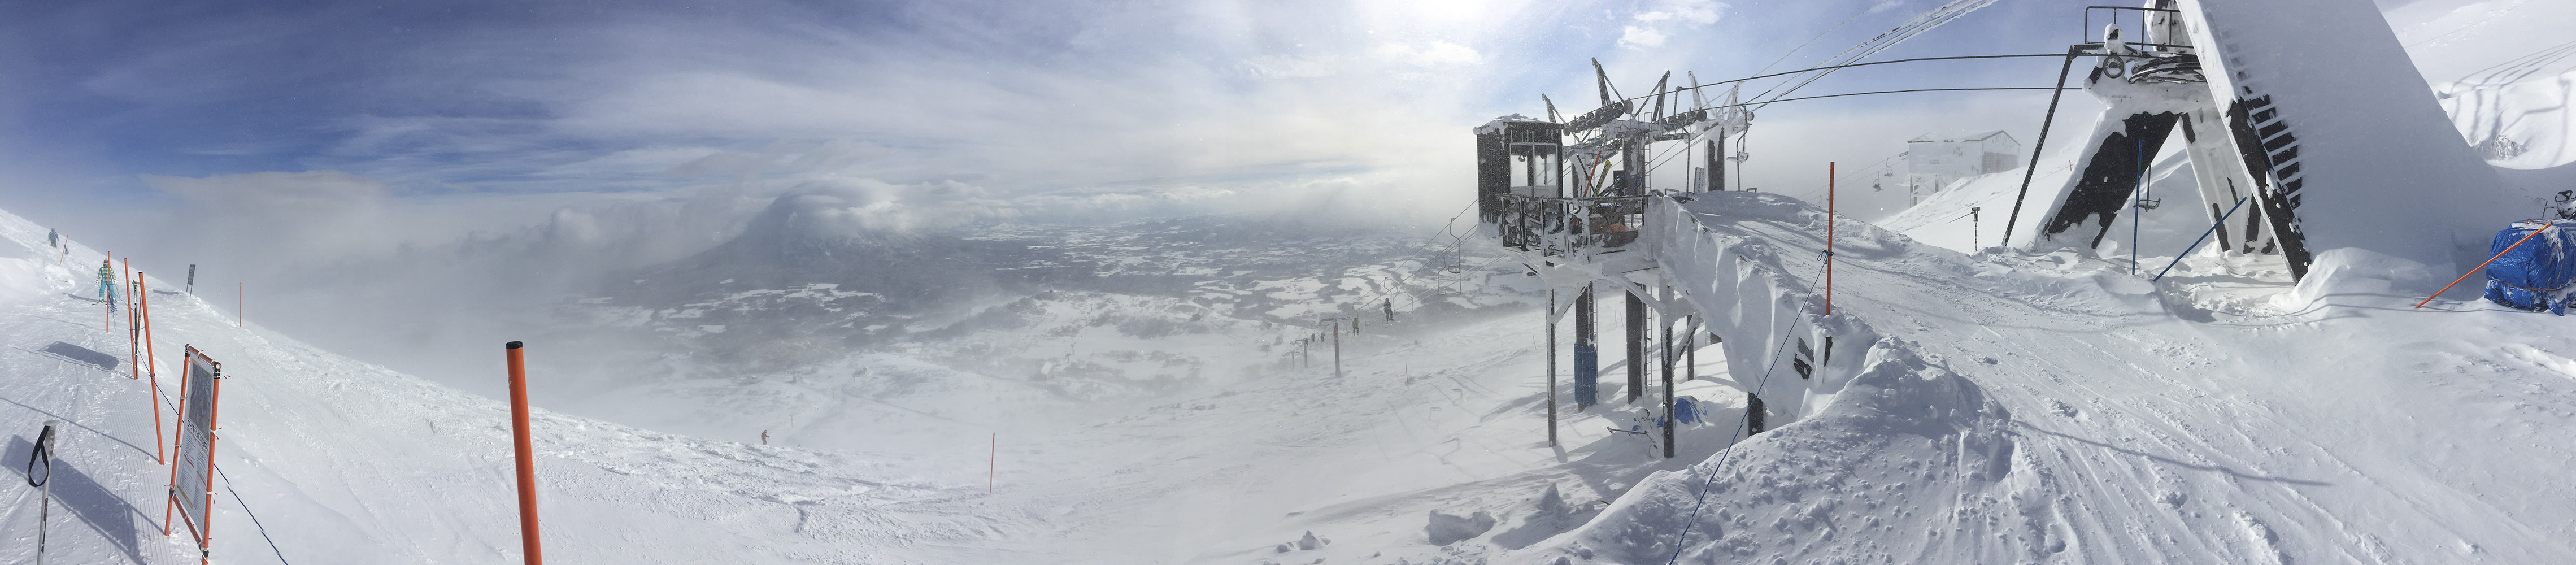 Snowboarding View from Niseko Peak